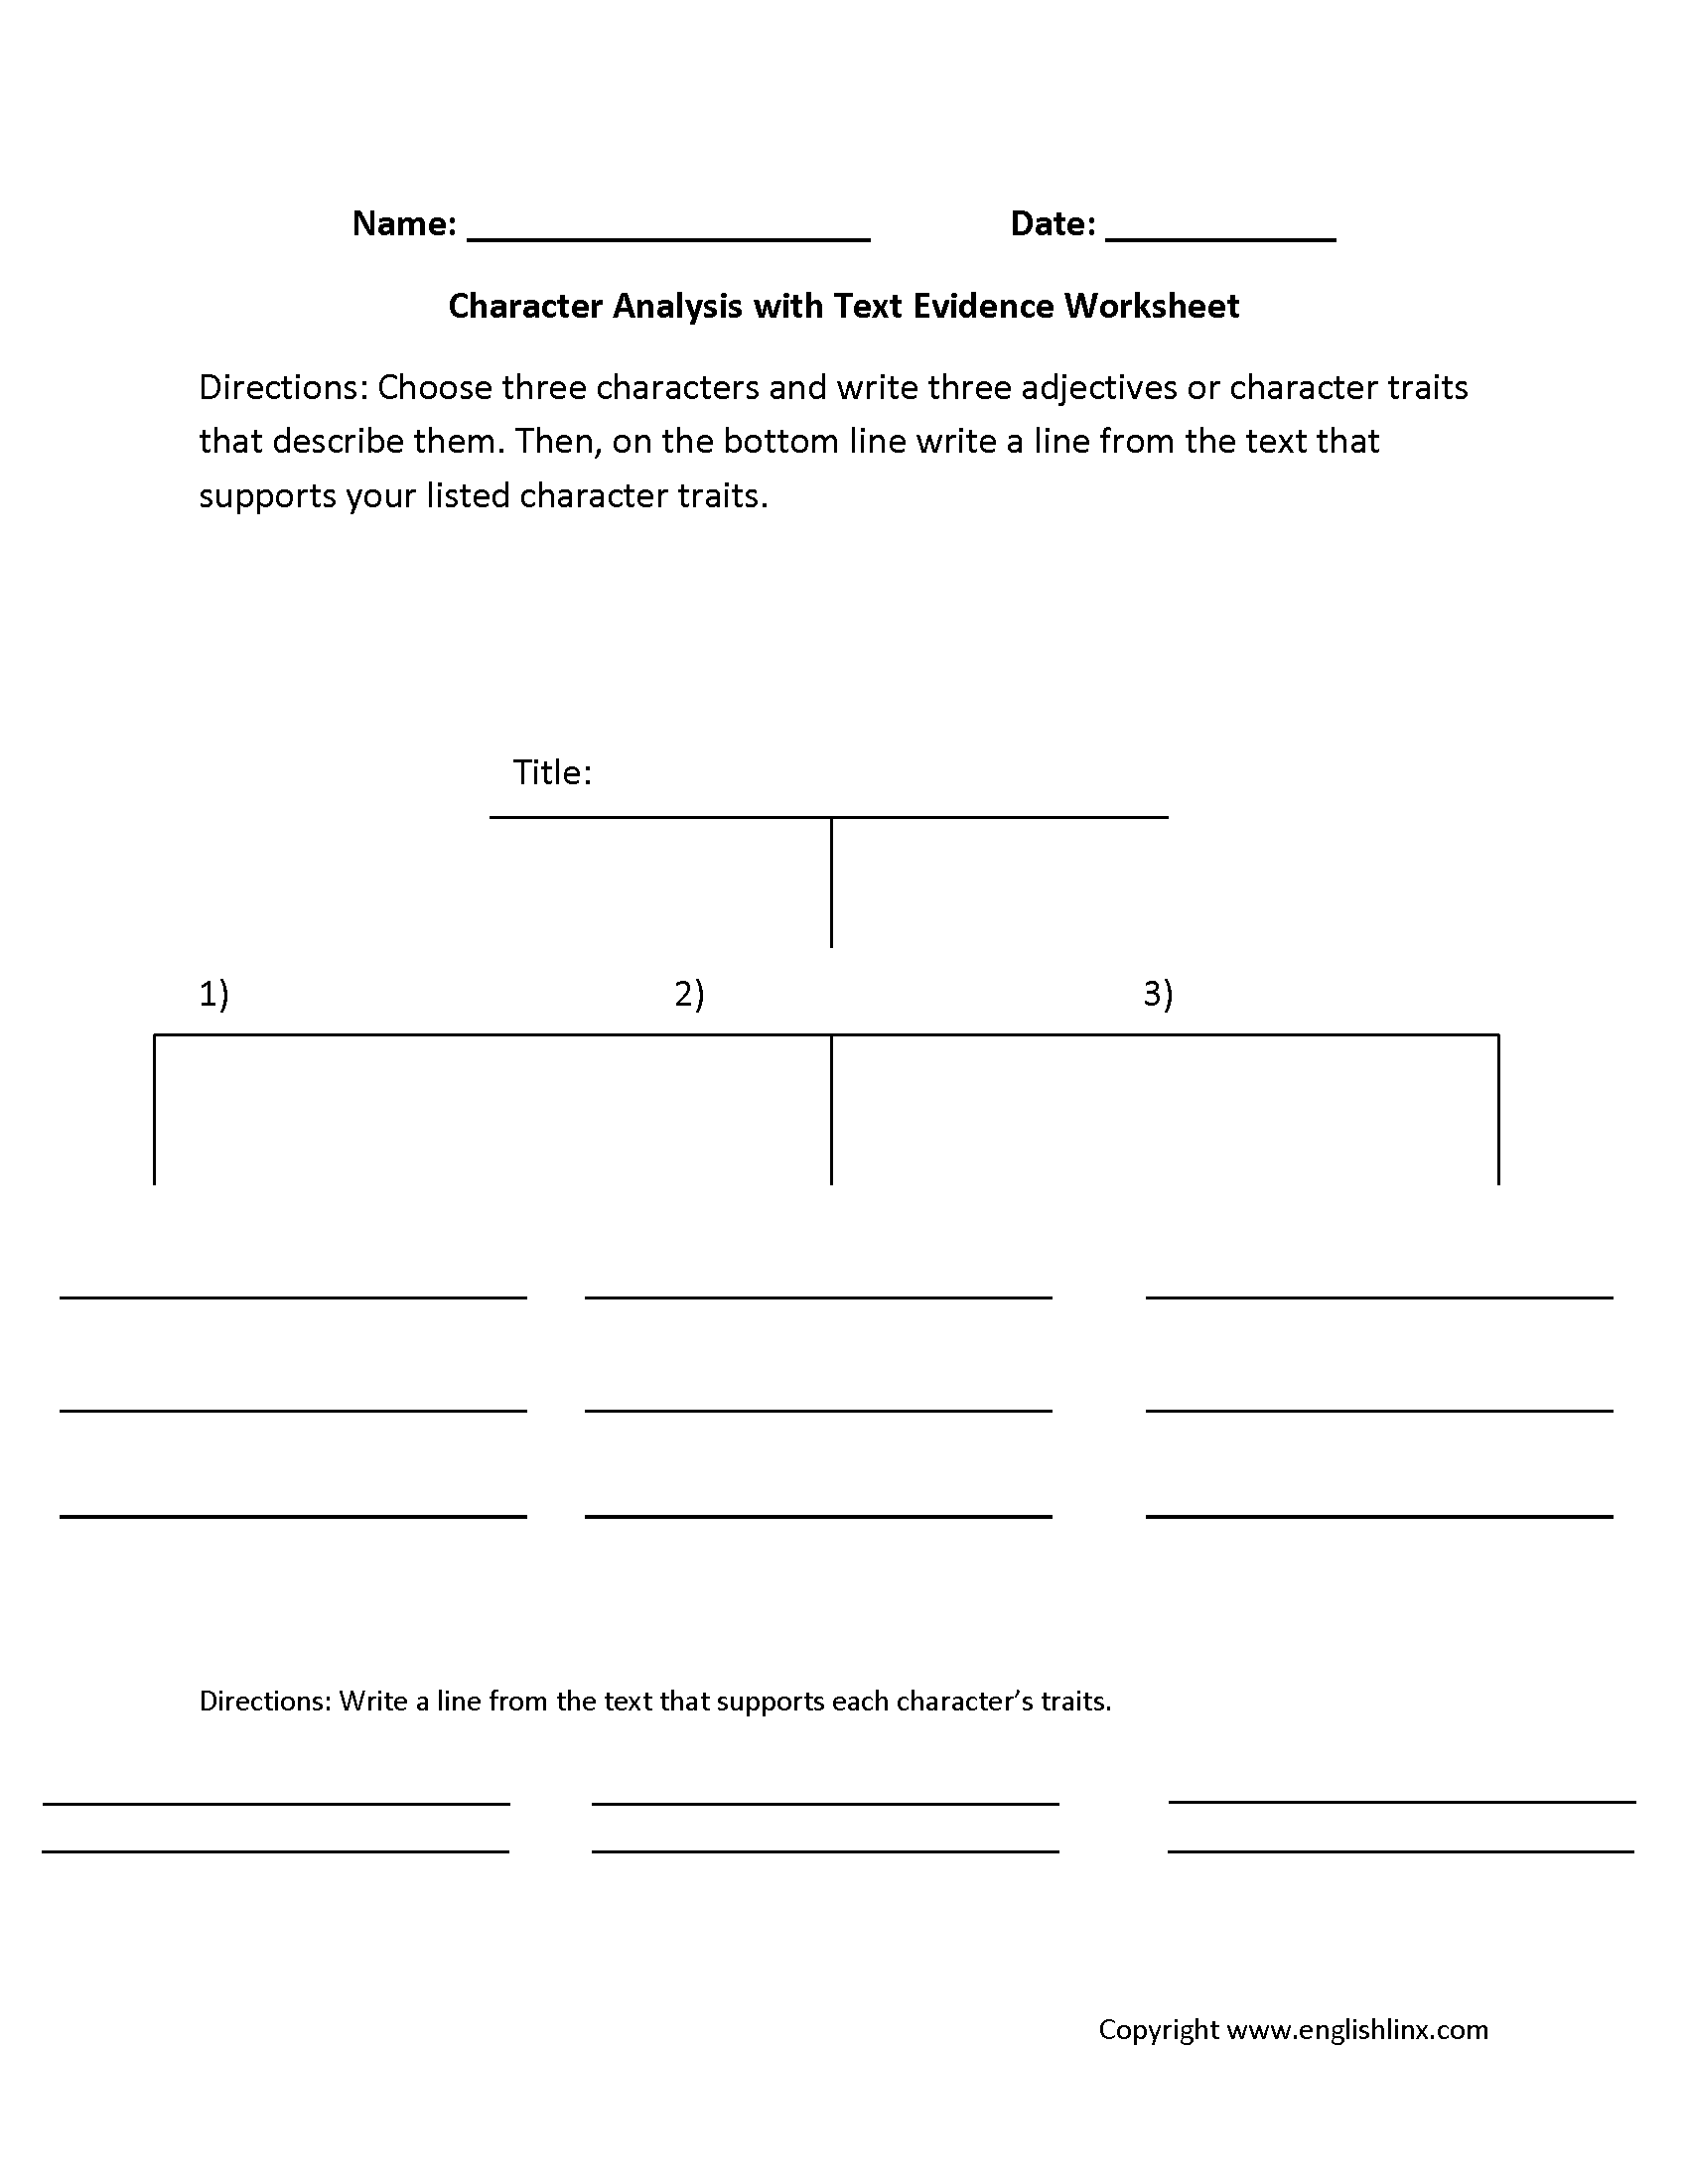 hight resolution of Character Analysis Text Evidence Worksheets   Education   Text on Best  Worksheets Collection 3282